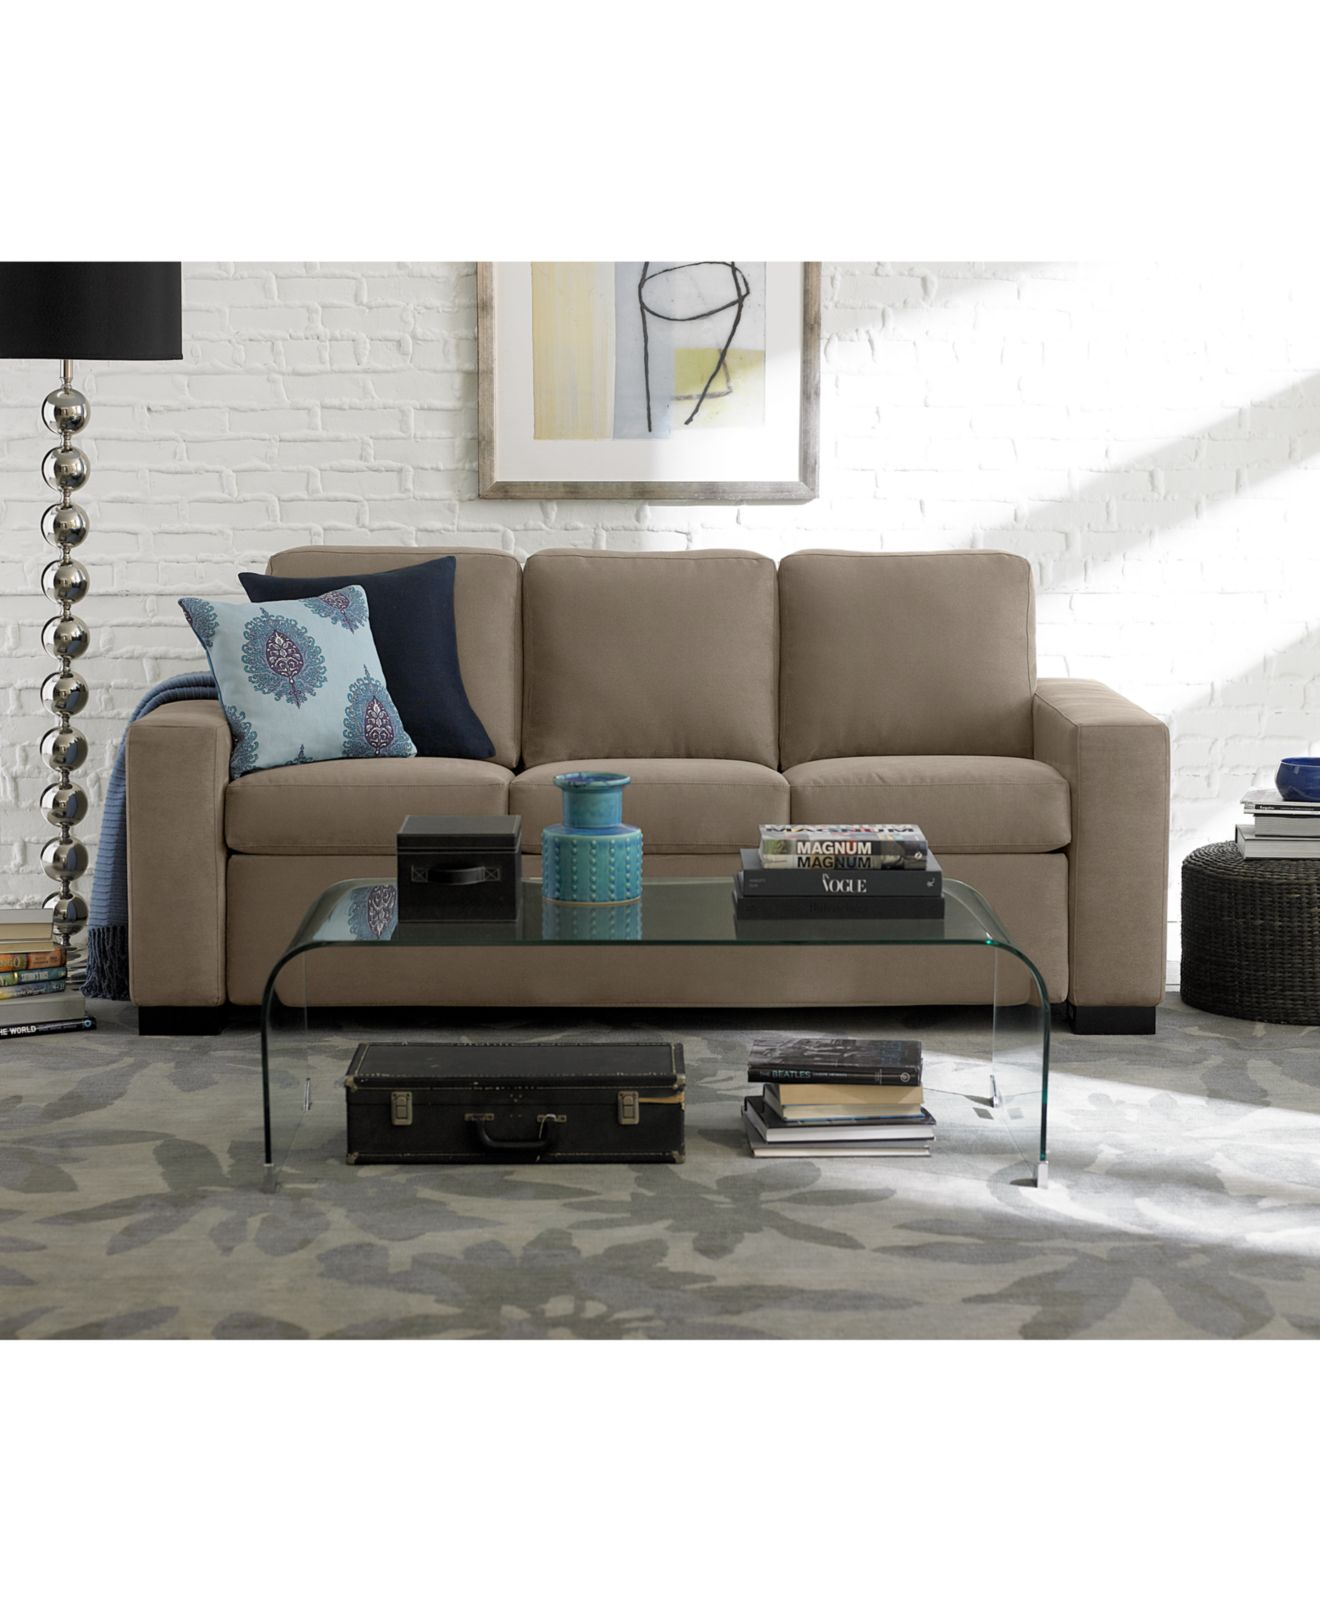 Convertible Sofas Shop Convertible Sofa Bed Macy s